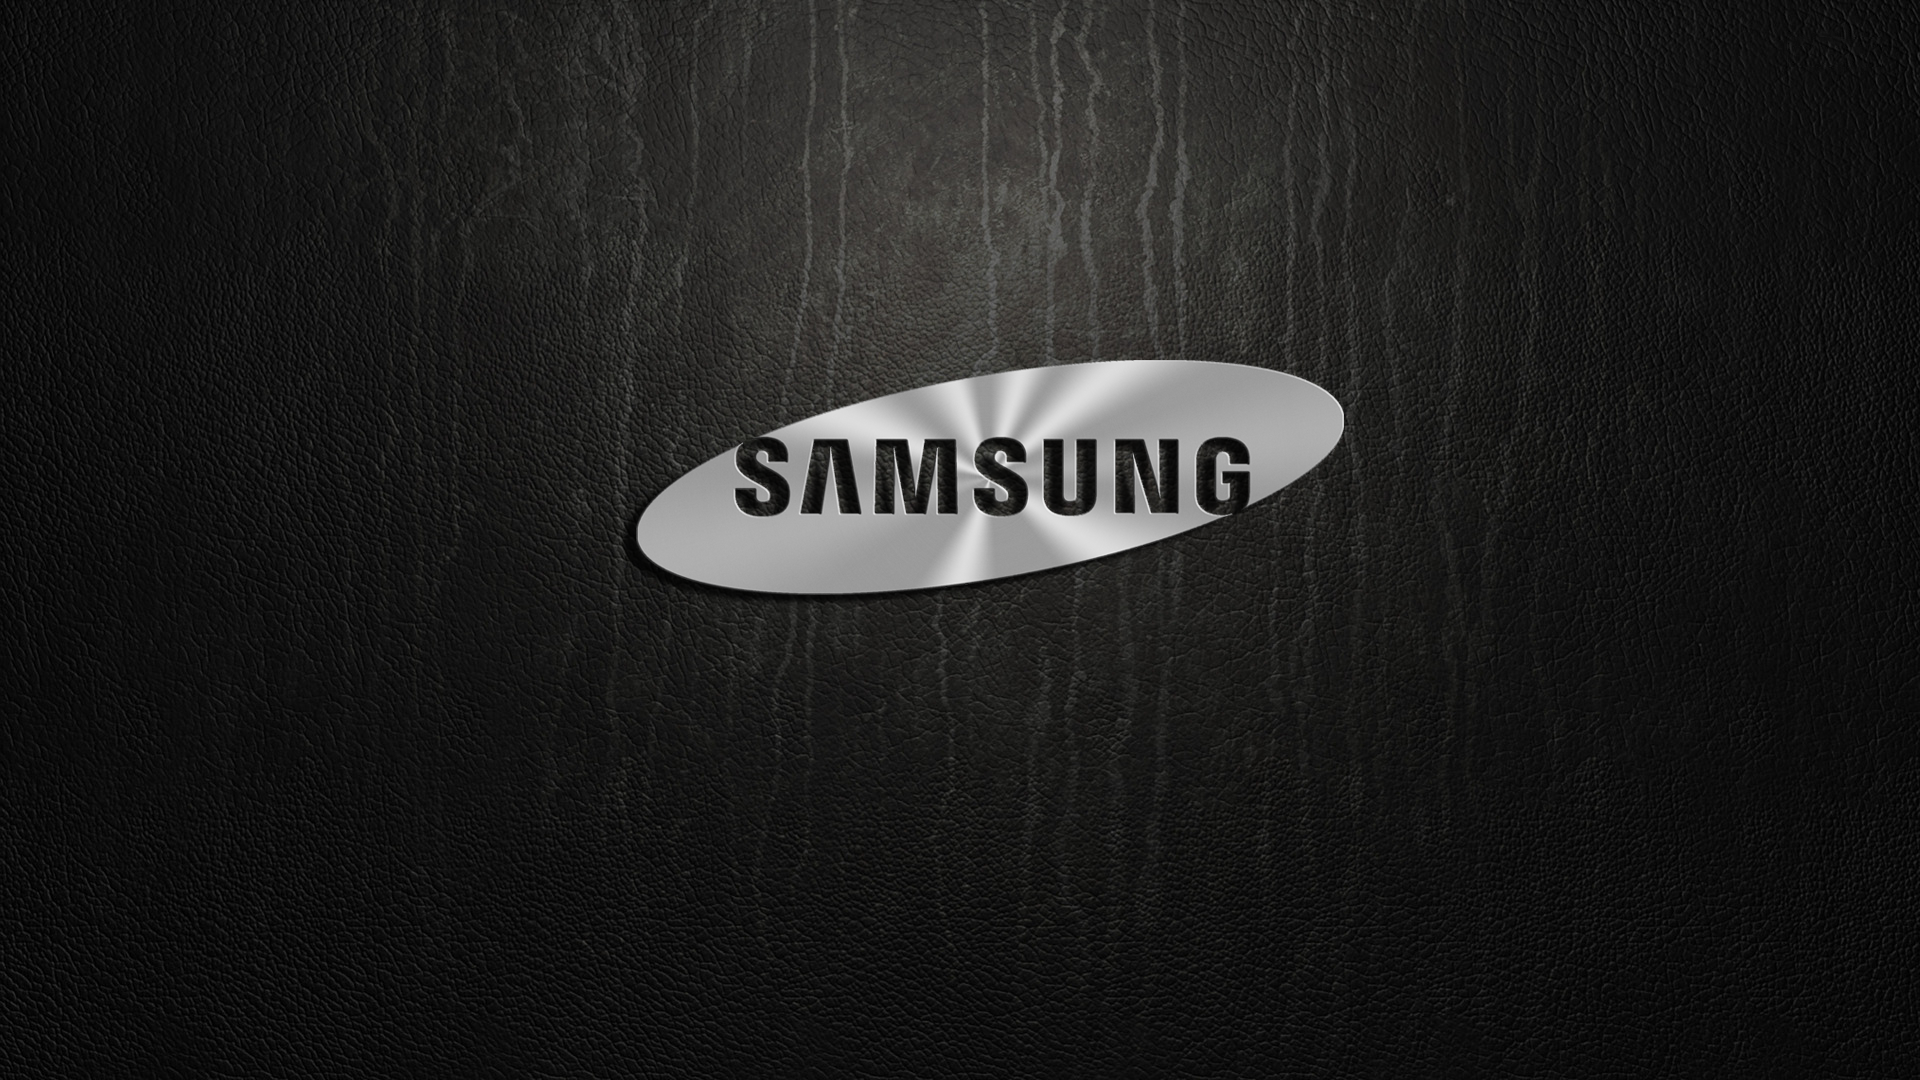 Samsung HD Wallpaper Background Image 1920x1080 ID588106 1920x1080